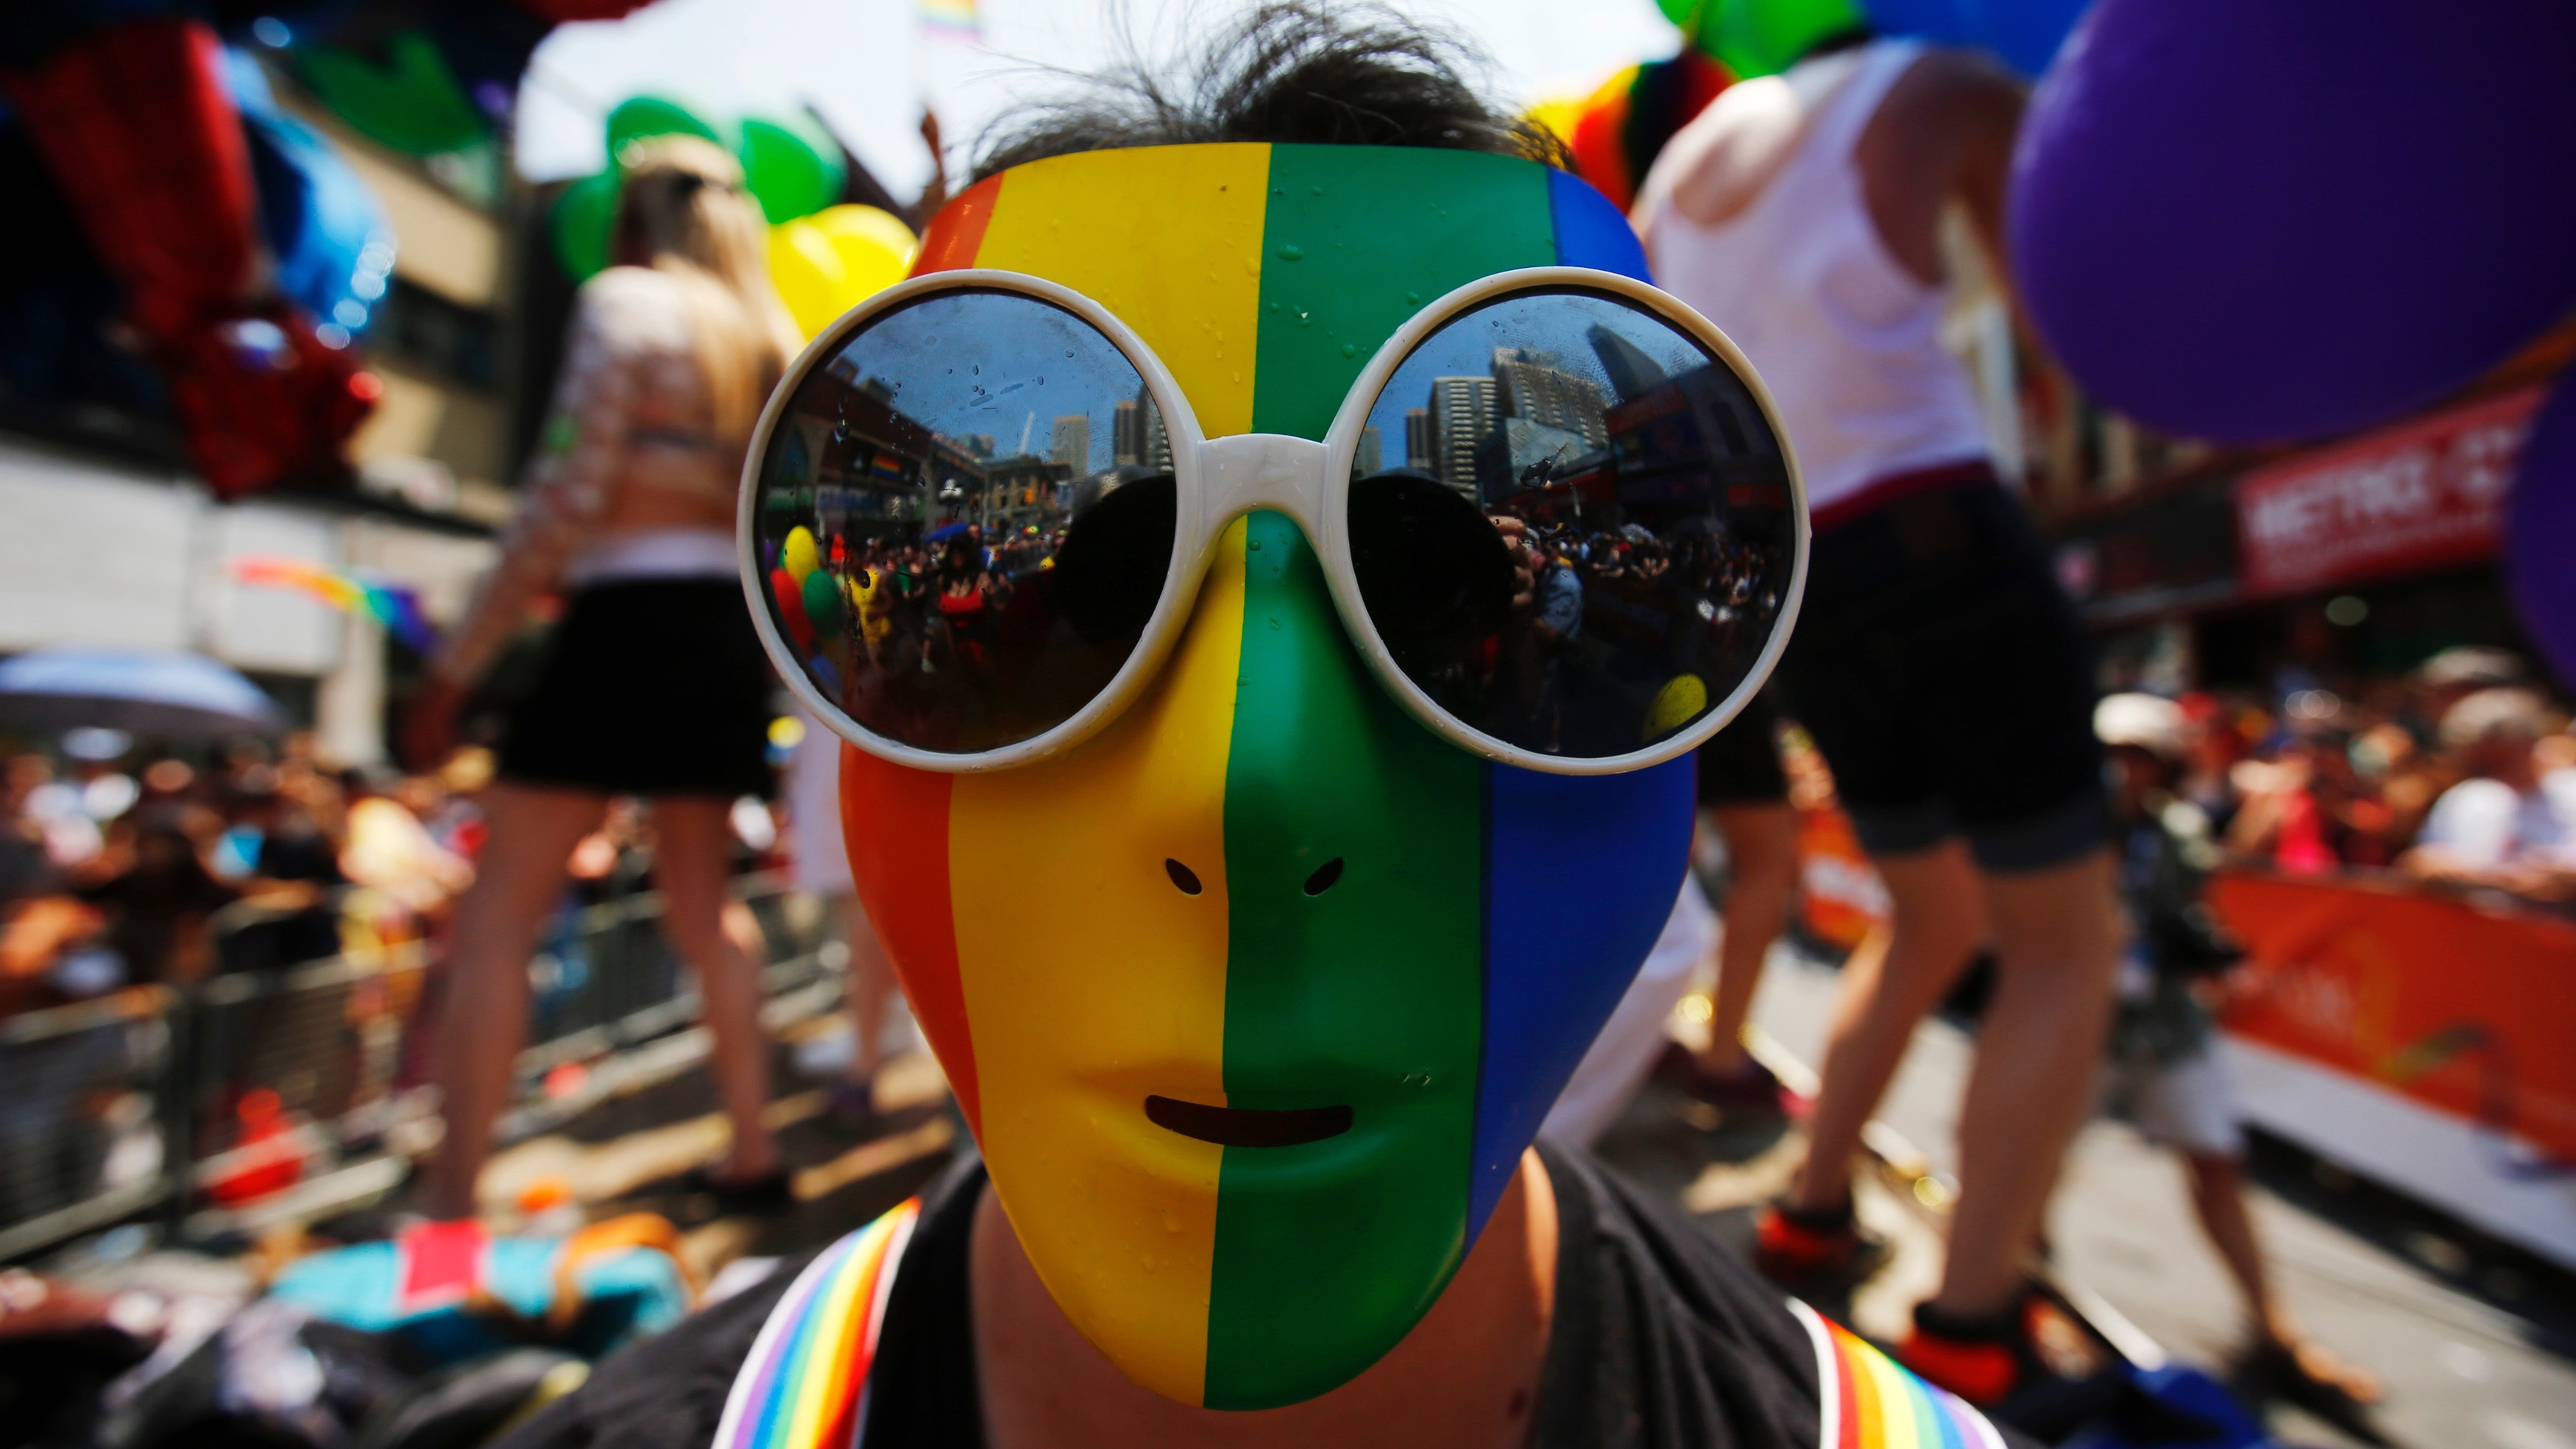 """A man wearing a rainbow mask is seen during the"""" WorldPride"""" gay pride Parade in Toronto, June 29, 2014. Toronto is hosting WorldPride, a week-long event that celebrates the lesbian, gay, bisexual and transgender (LGBT) community.    REUTERS/Mark Blinch (CANADA - Tags: SOCIETY) - RTR3WCL5"""